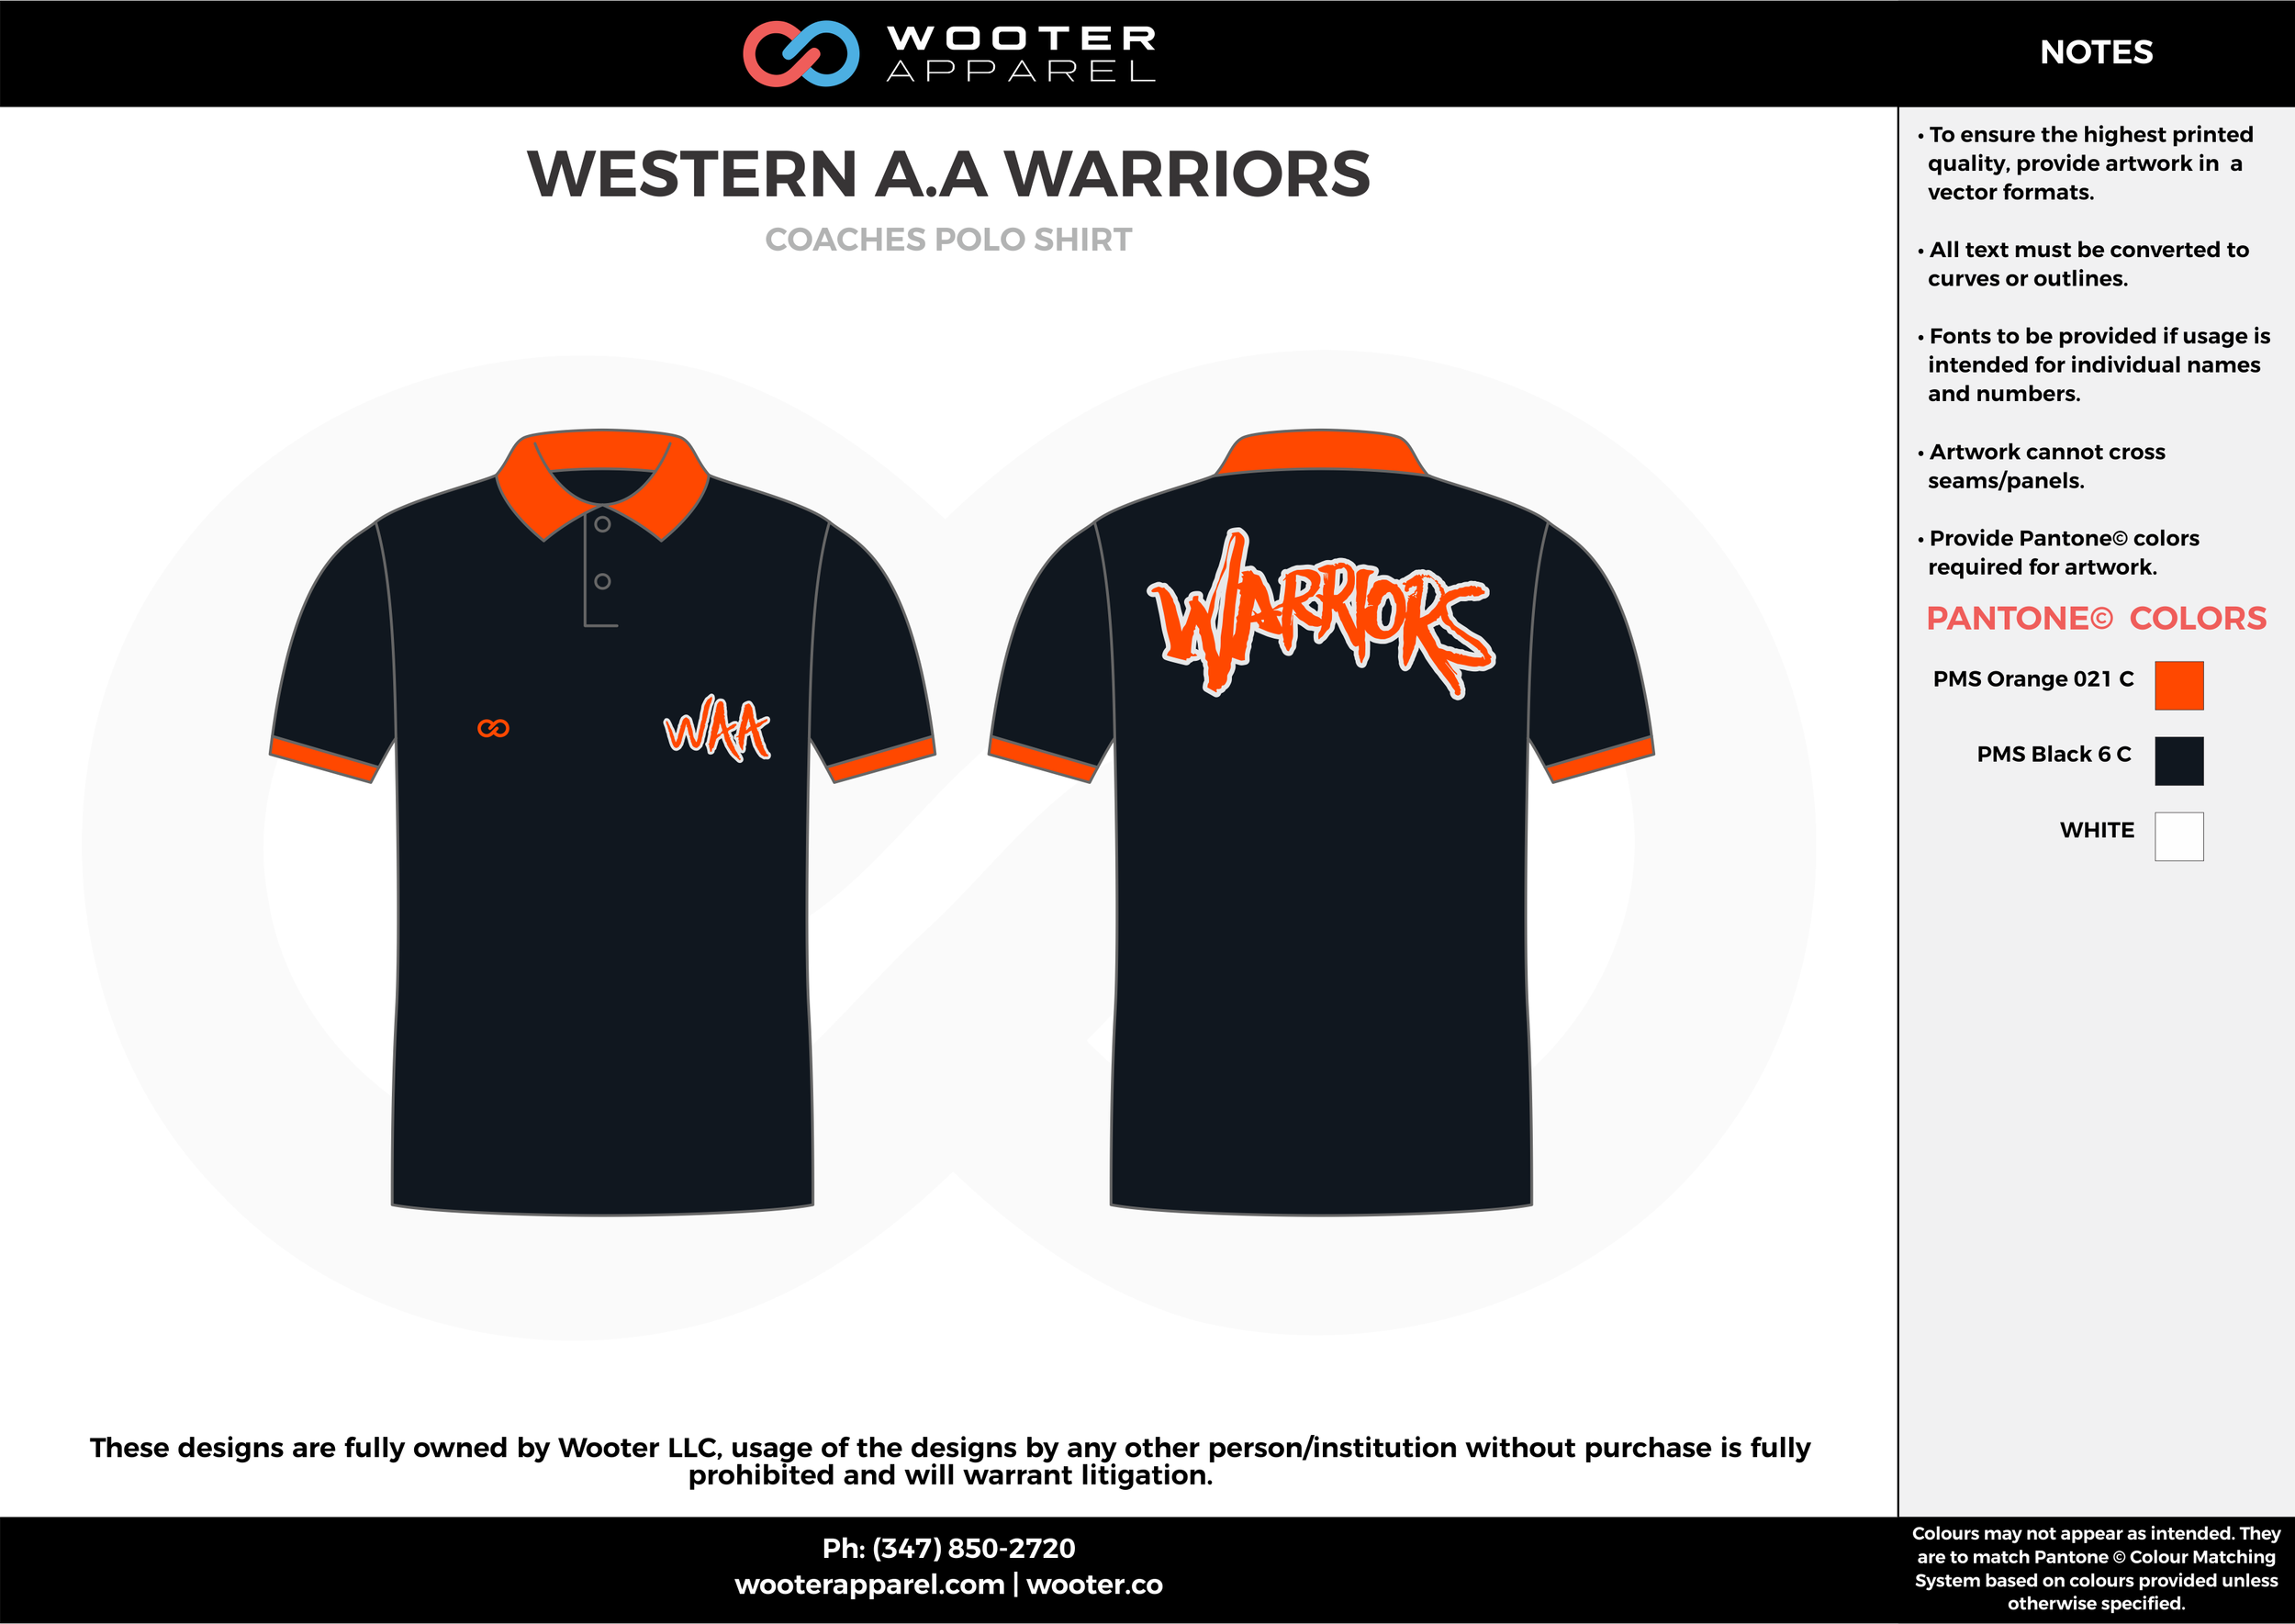 WESTERN A.A WARRIORS Black and Orange Sublimated Polo Shirts